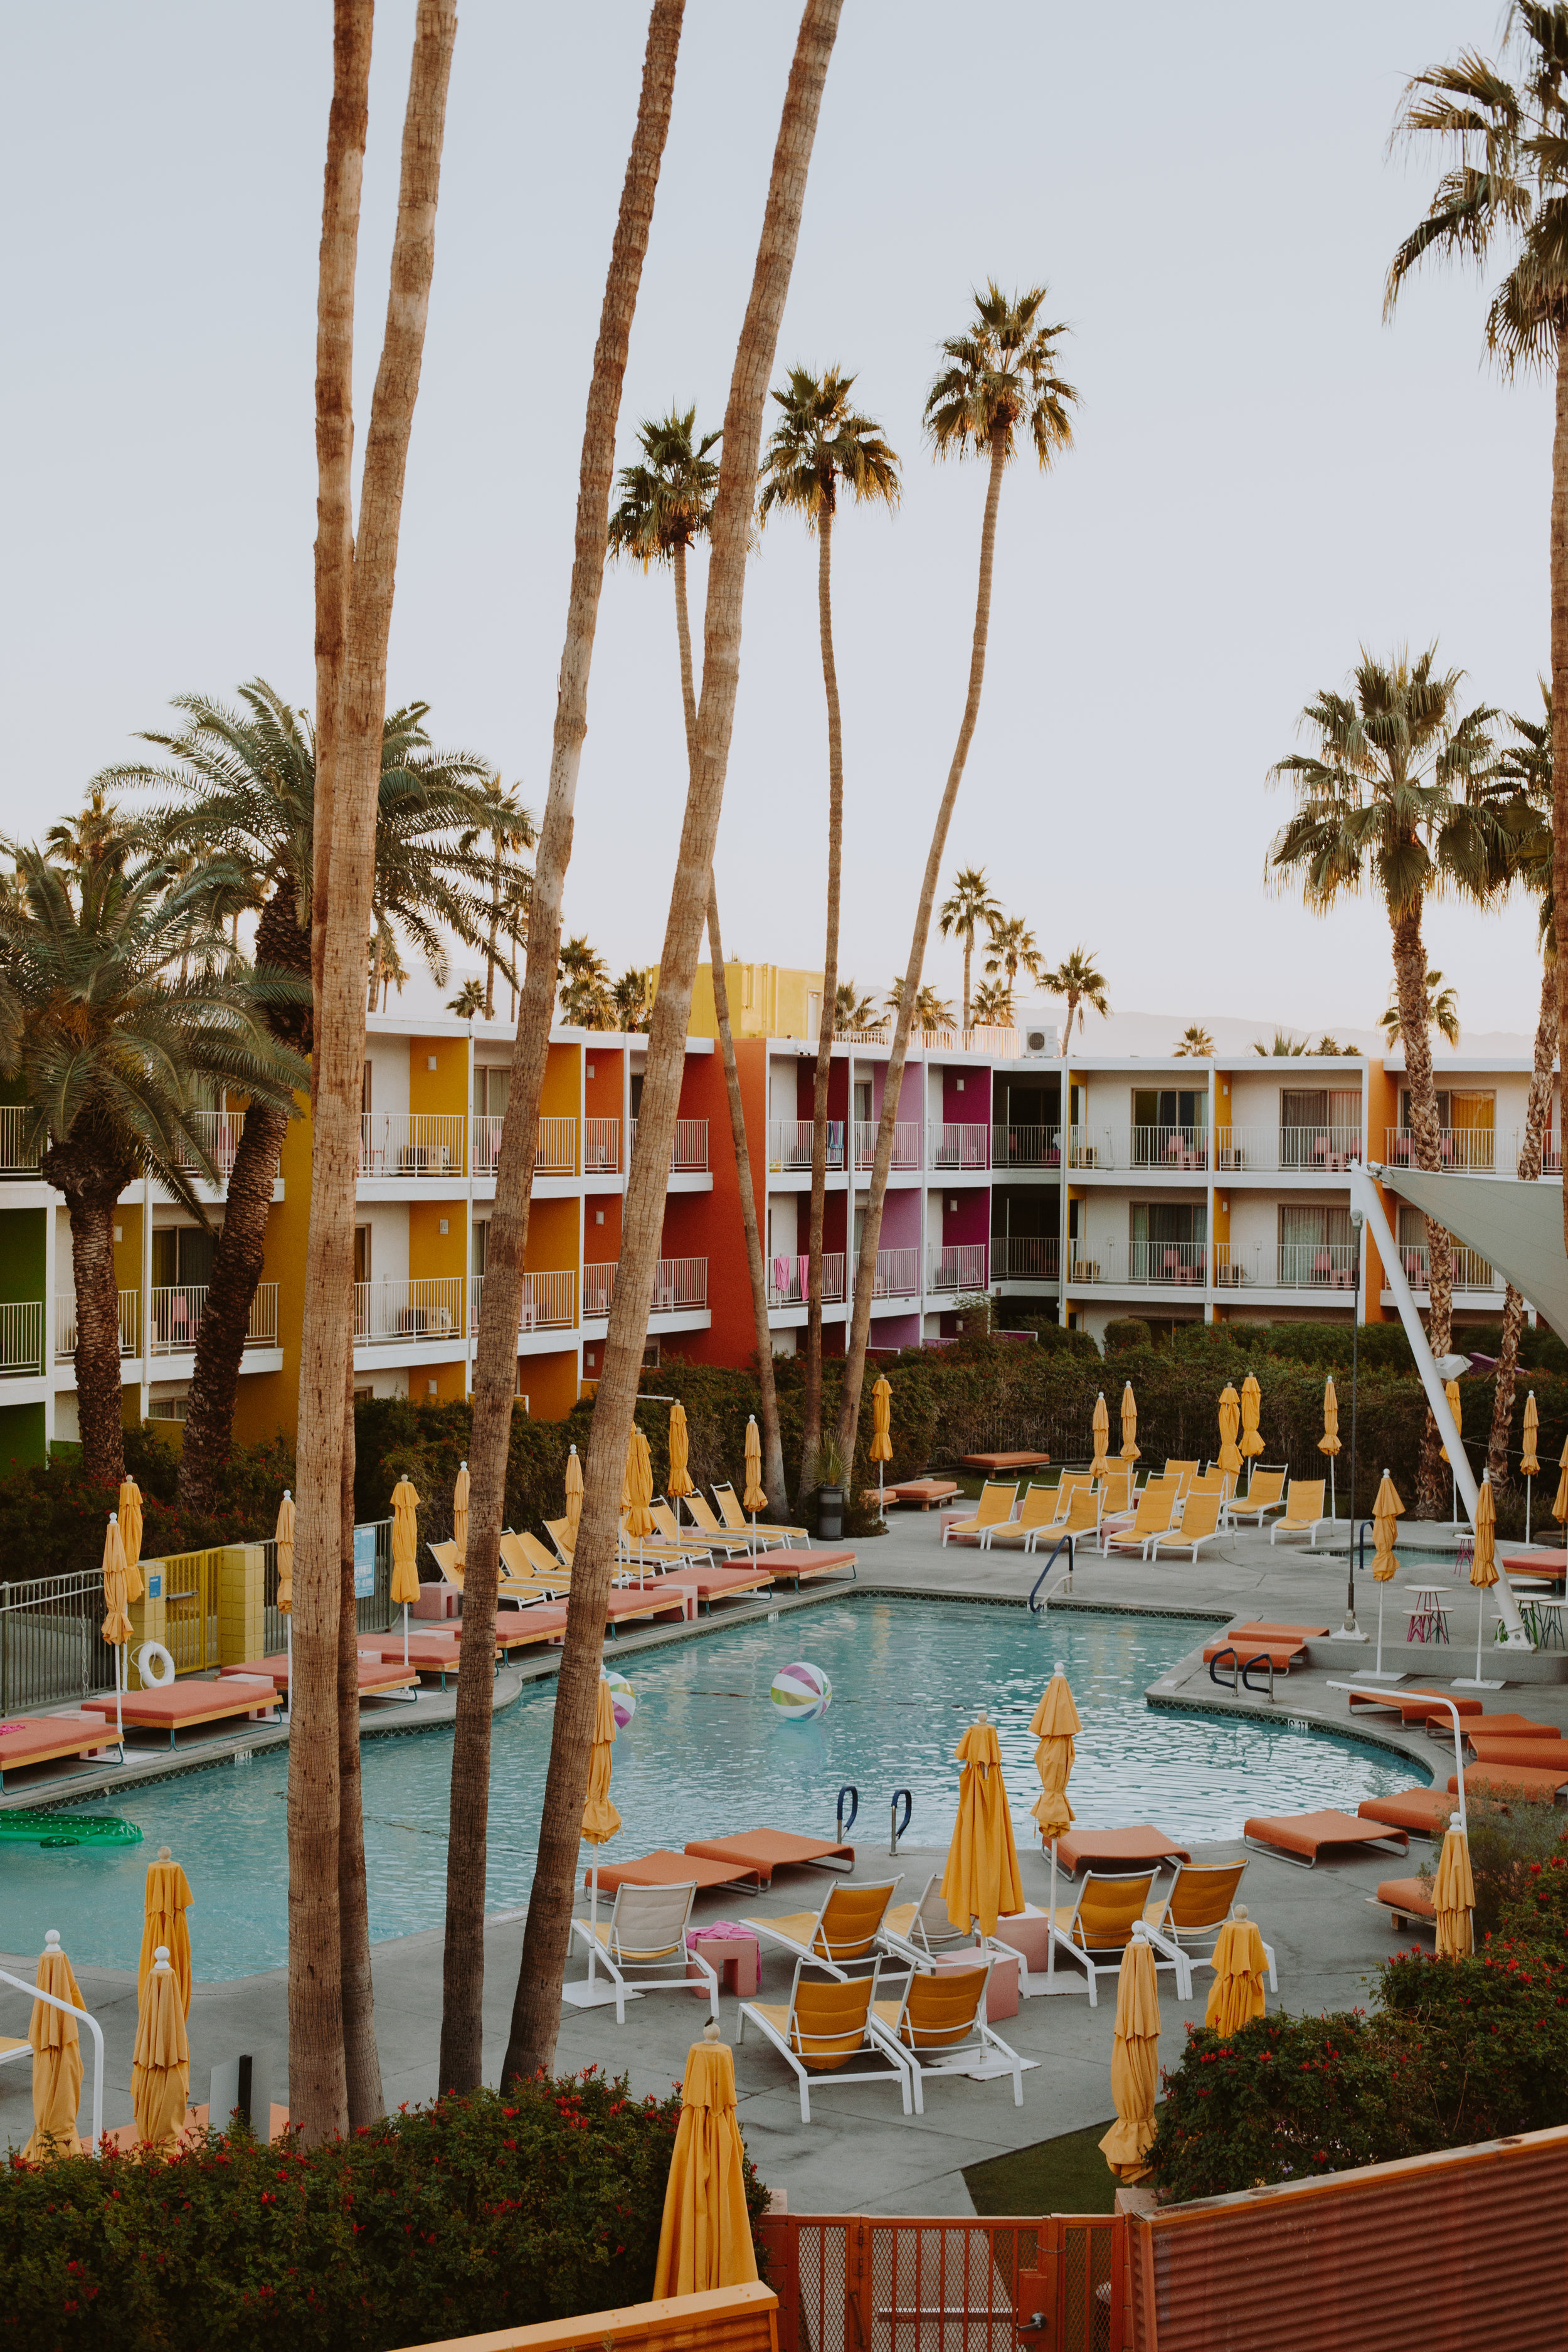 The Saguaro Hotel - An oasis in the Sonoran Desert, The Saguaro Hotel is known for its myriad of colors and instagrammable exterior. Relax by the pool, play with the giant jenga set, or take a nap in the colorful hammocks. The Saguaro is the perfect escape from the hustle and bustle of LA.